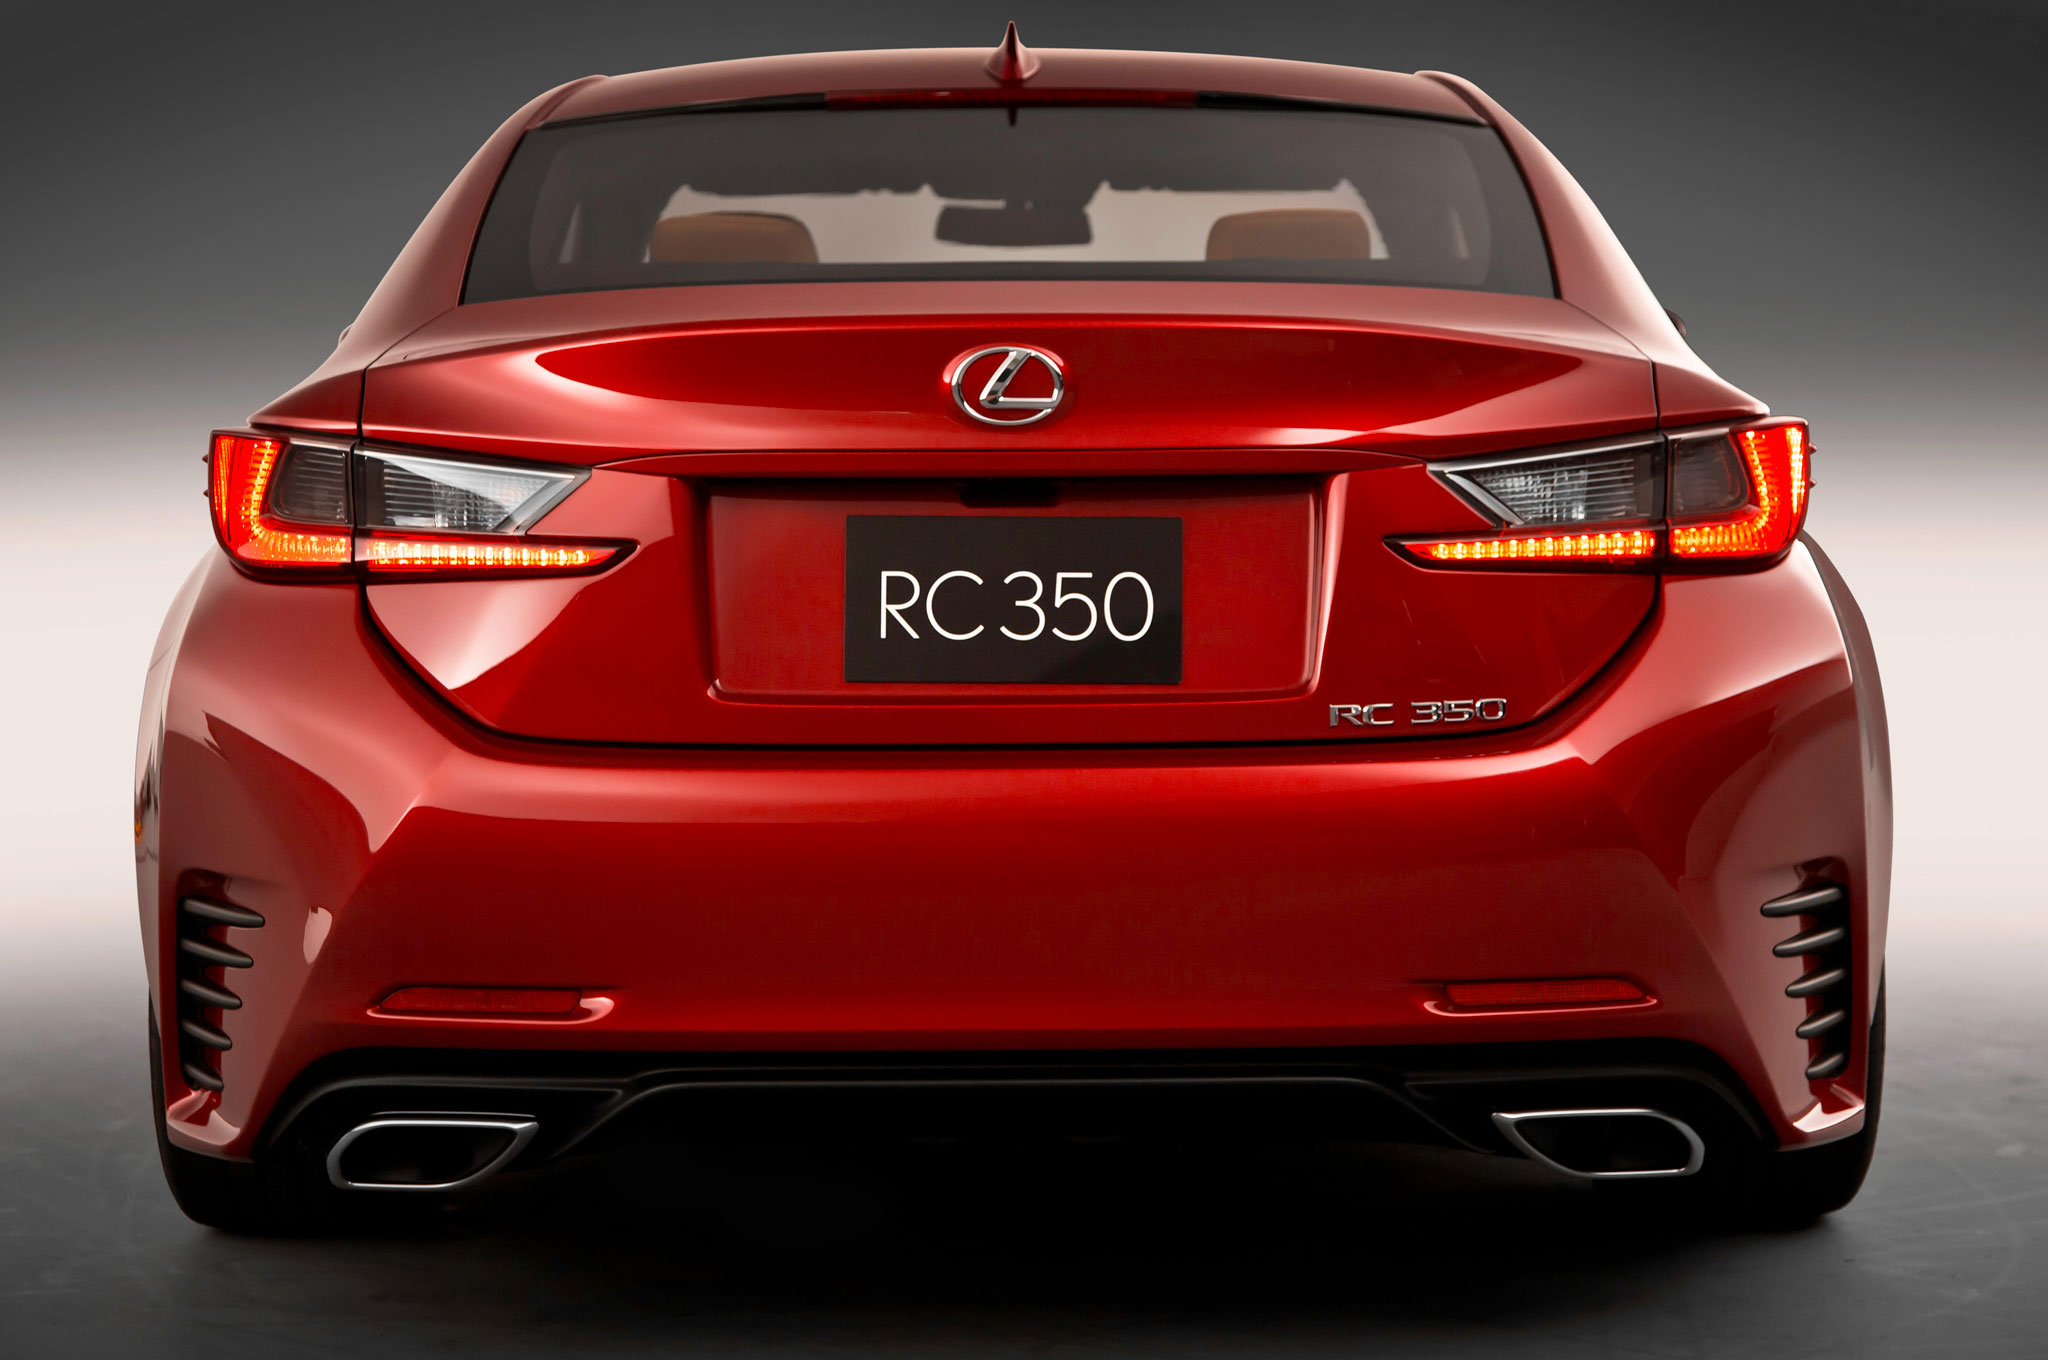 More Photos Of The Lexus RC Coupe